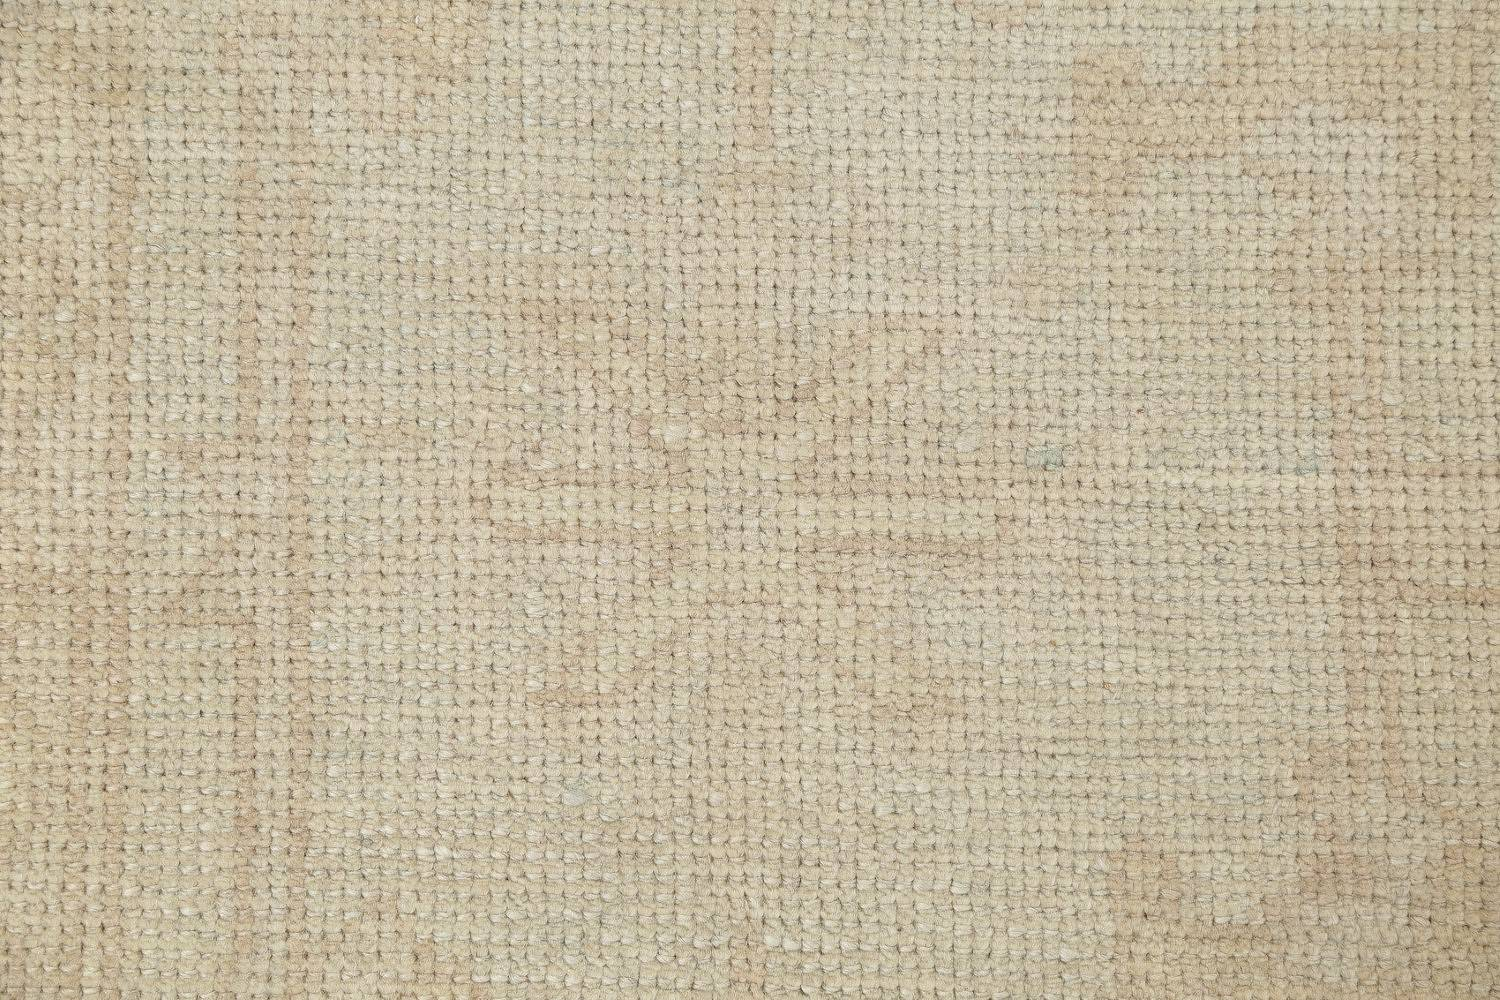 Vegetable Dye Muted Pale Blue Oushak Turkish Hand-Knotted Runner Rug 7x17 image 7